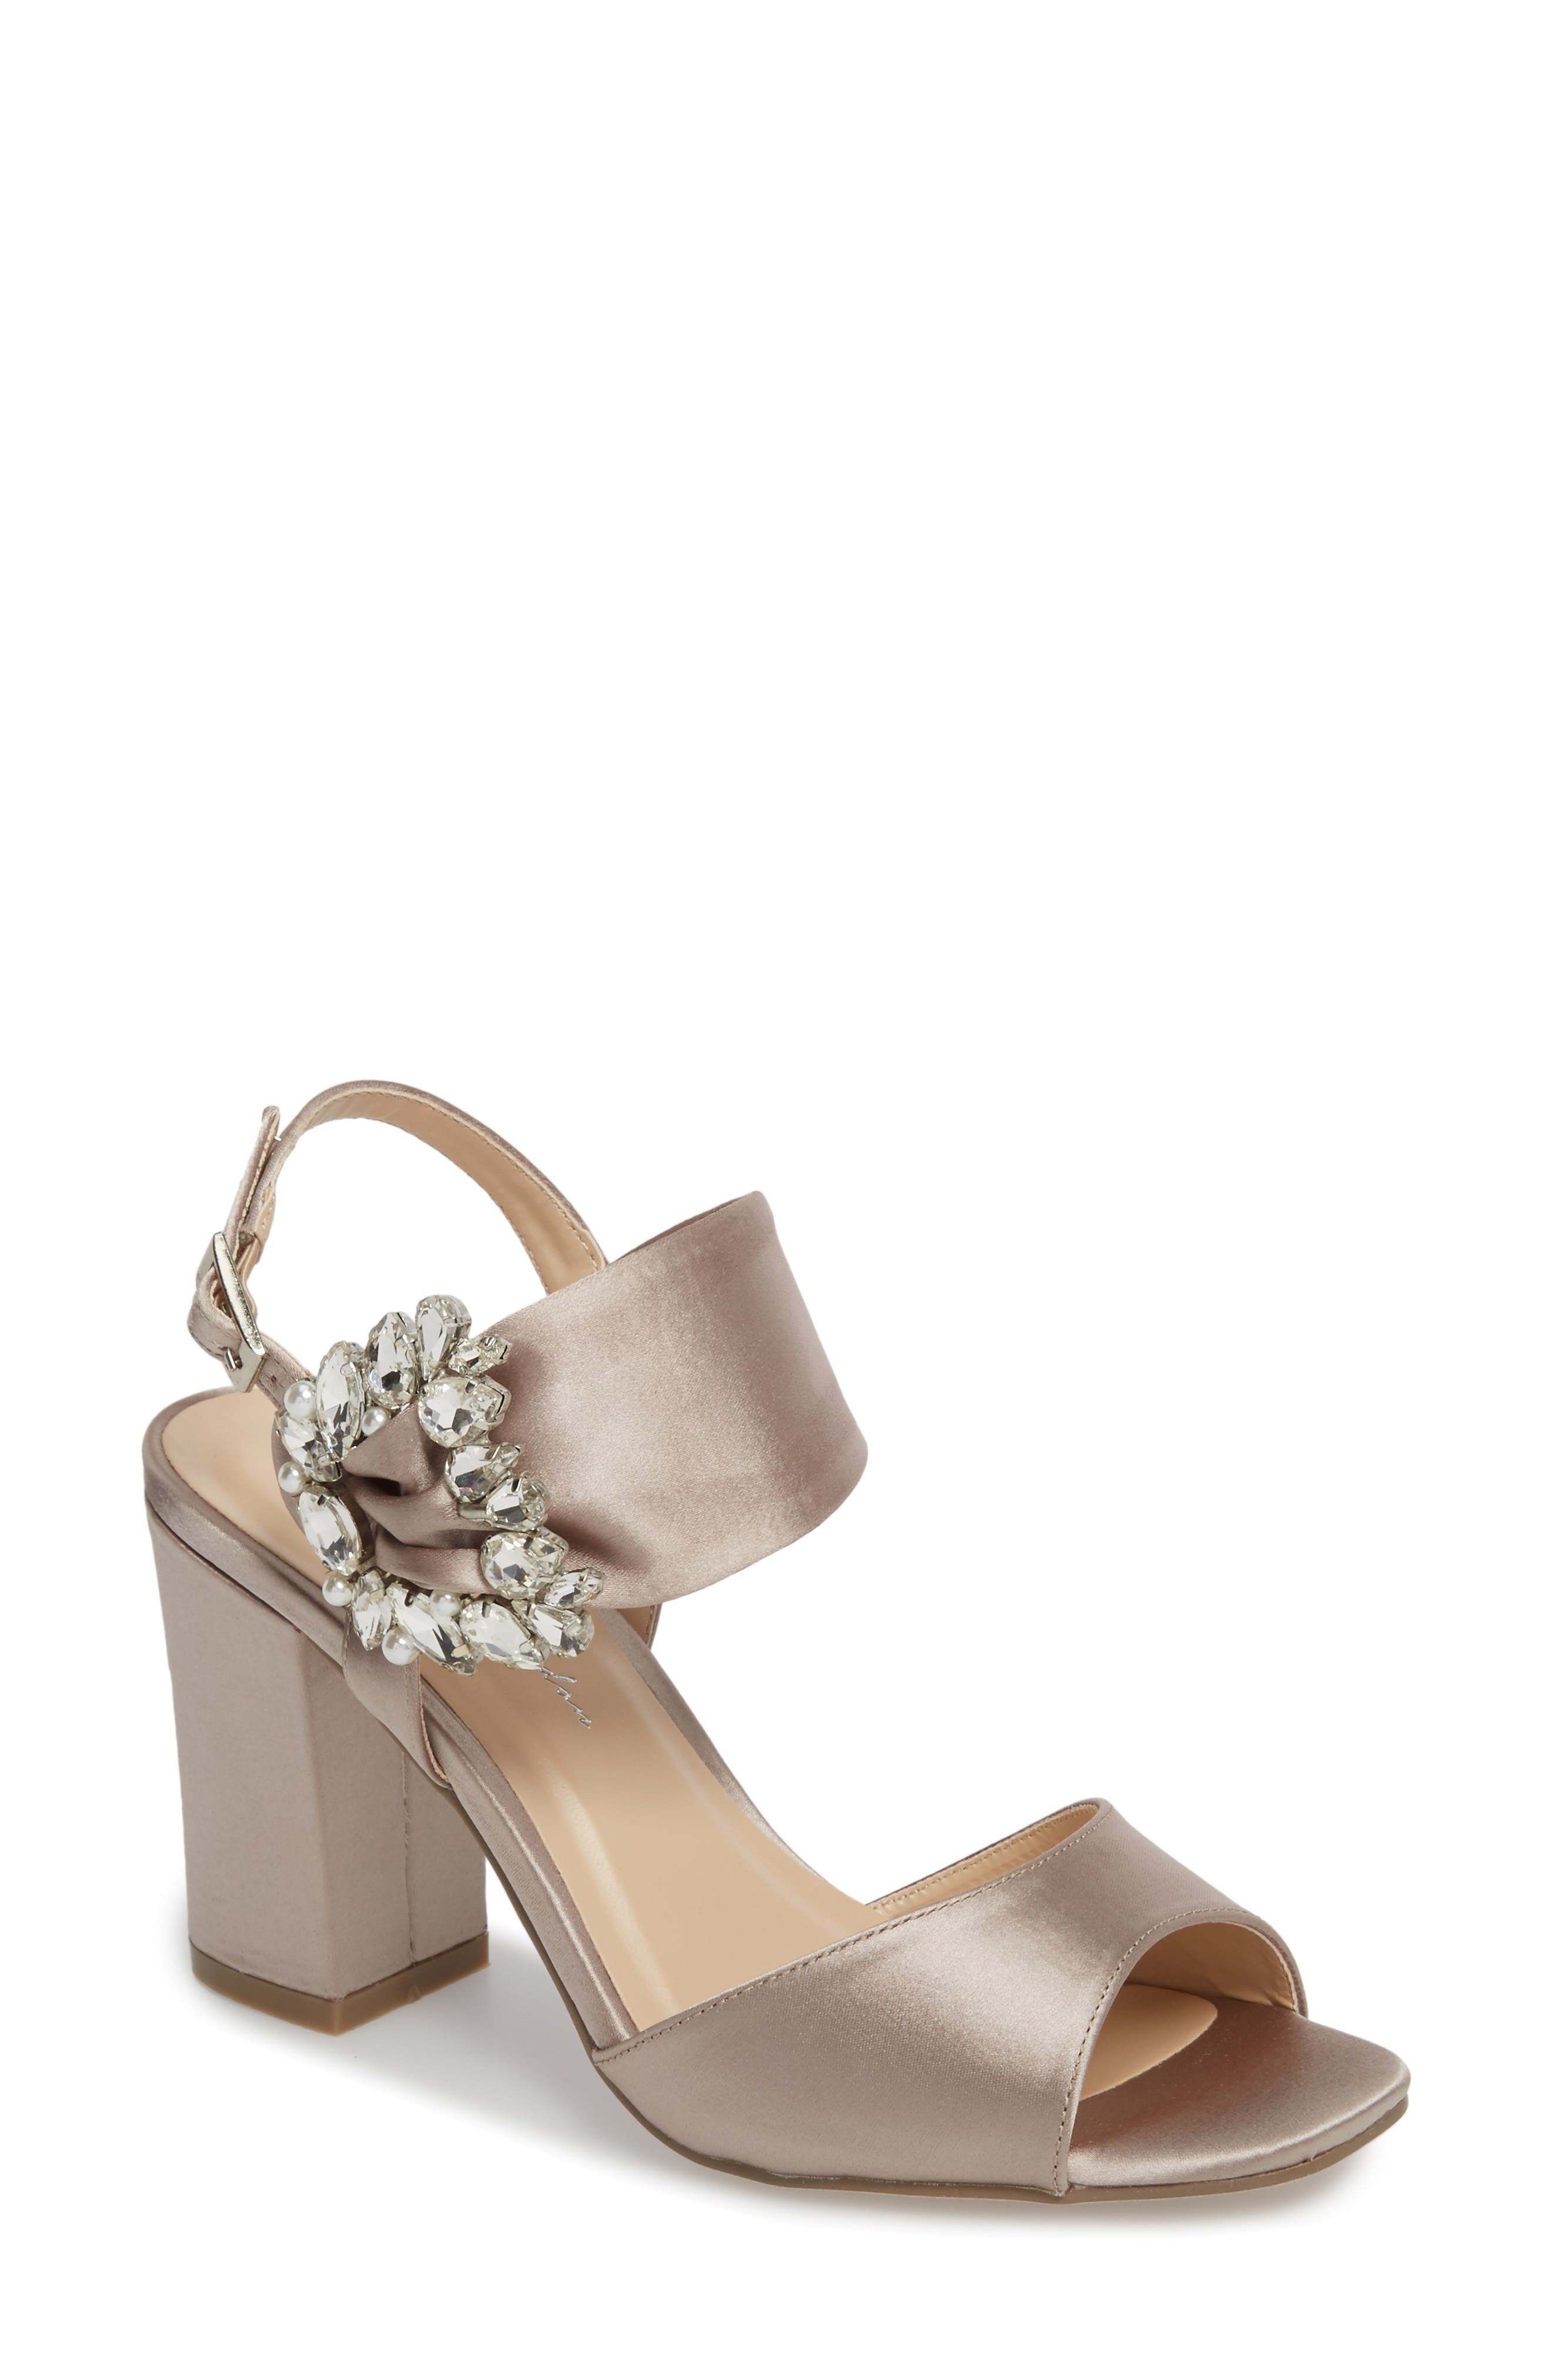 Manhattan Embellished Sandal,                             Main thumbnail 1, color,                             TAUPE SATIN